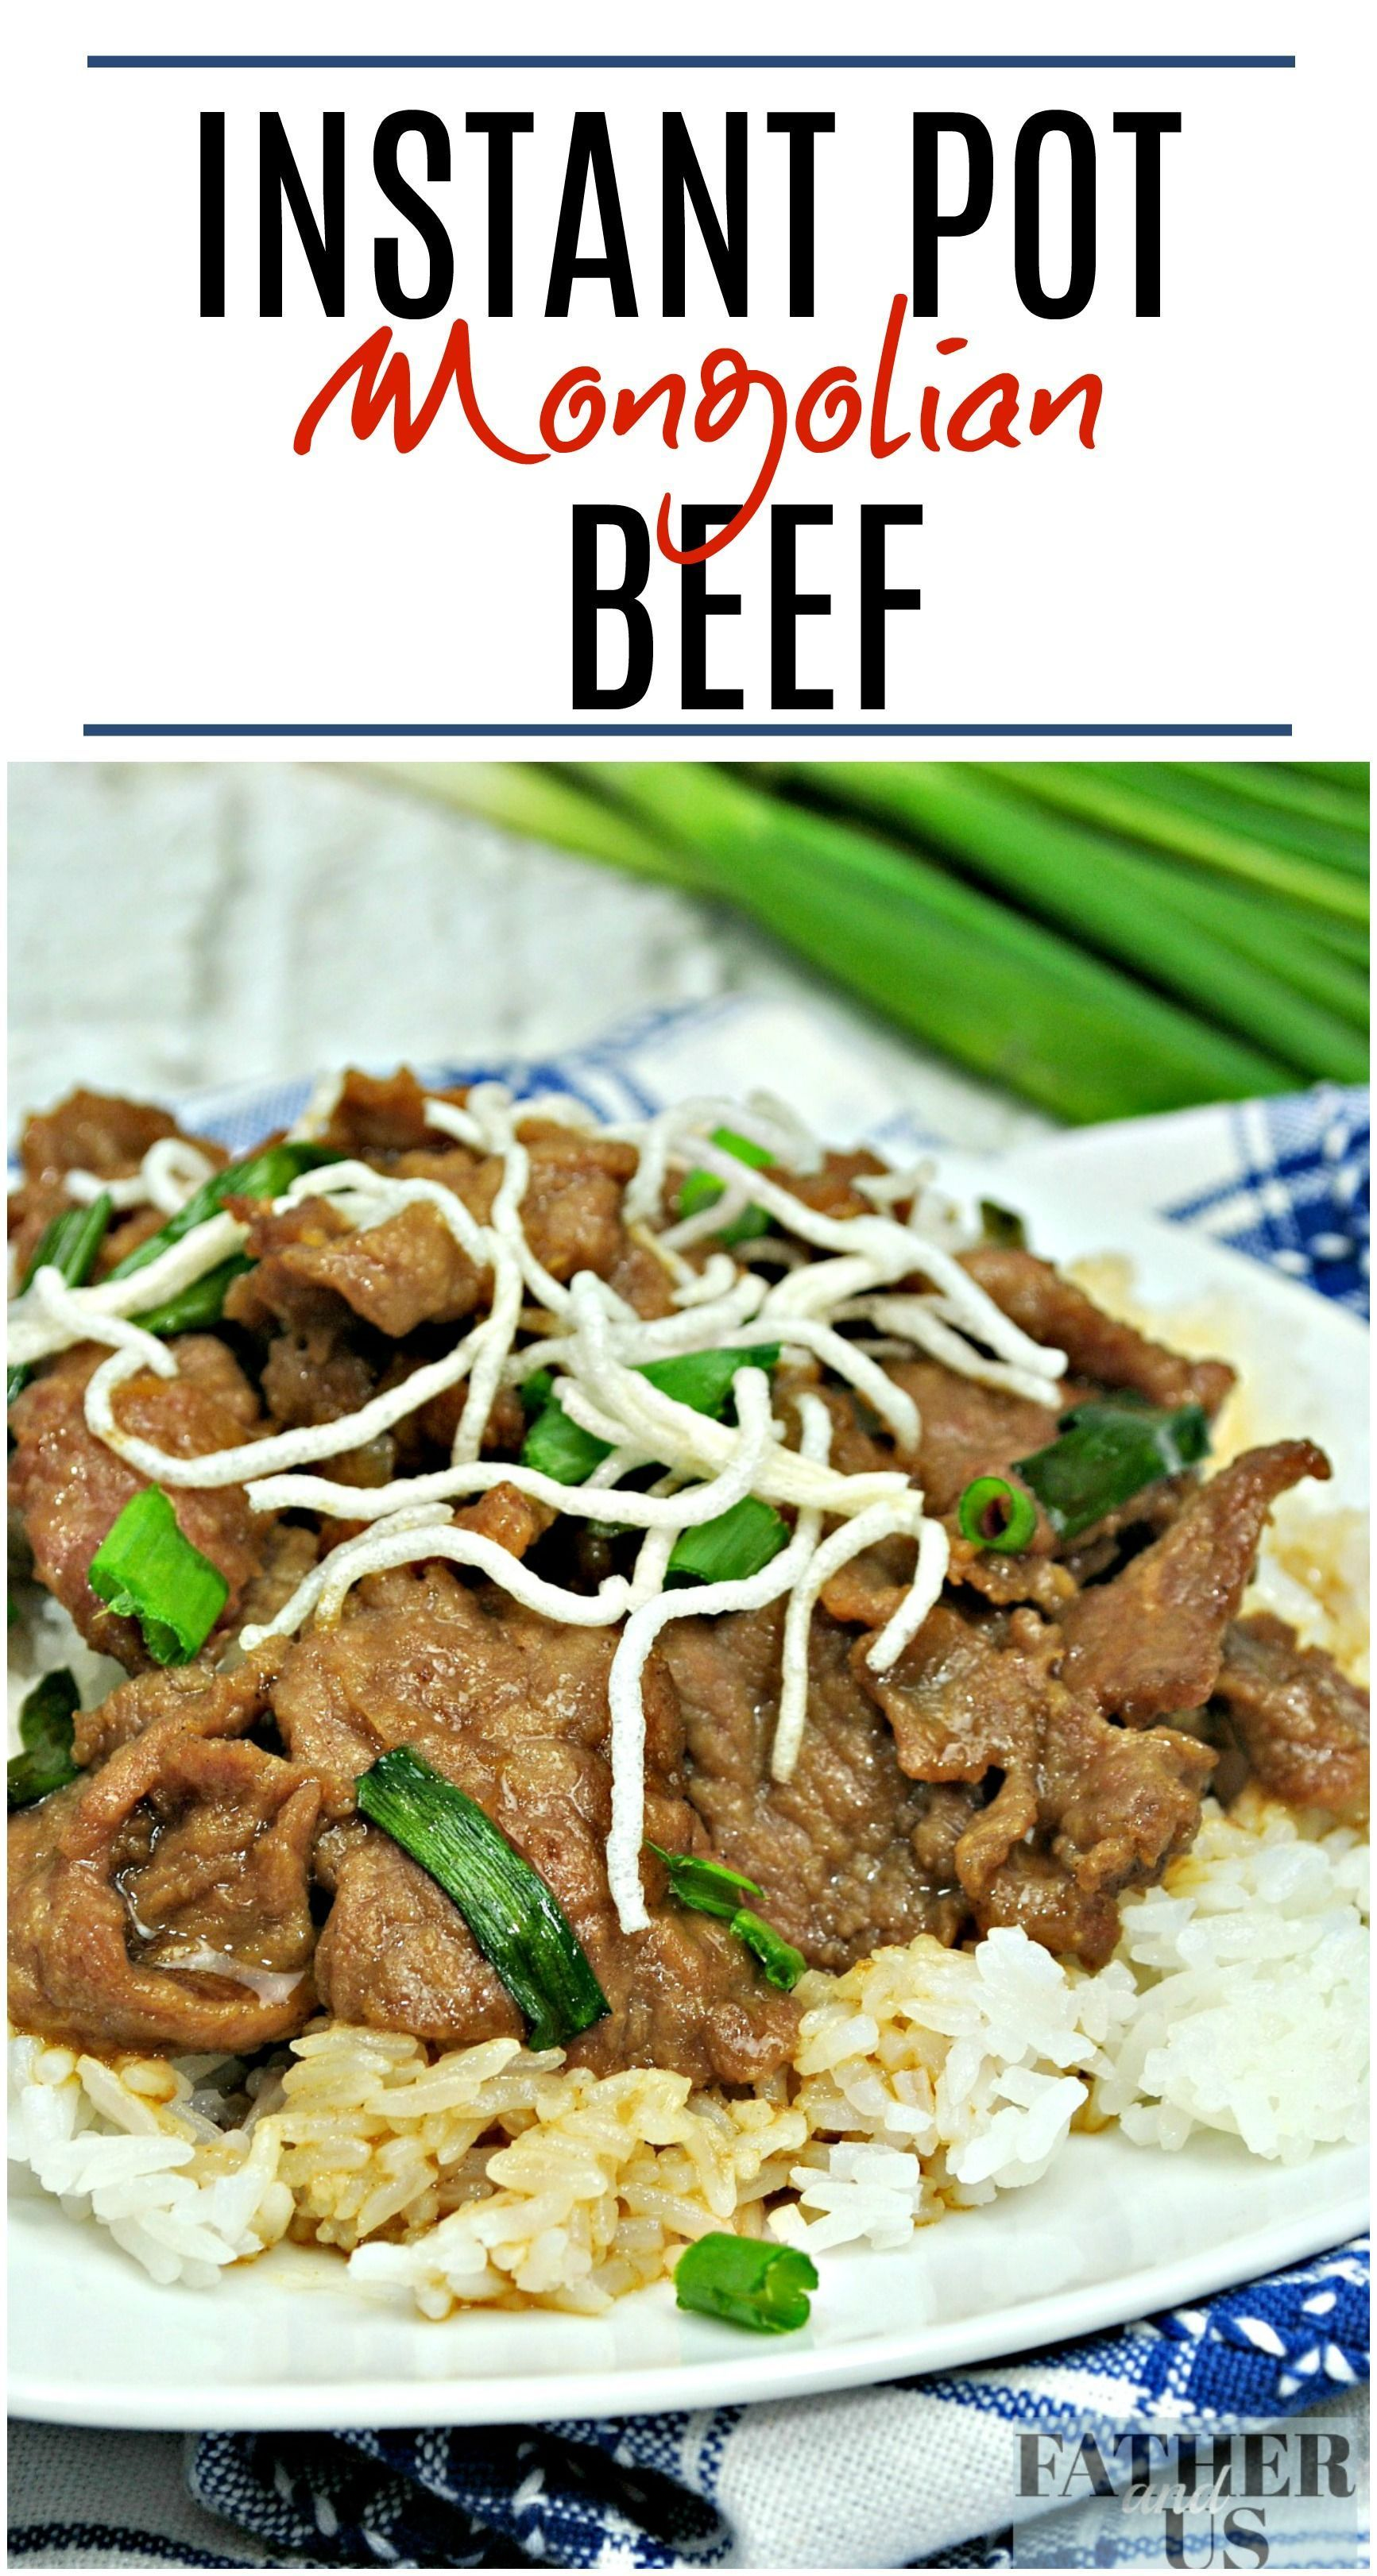 This Delicious Instant Pot Mongolian Beef Recipe Is Just The Thing When You Are Craving Take Cube Steak Recipes Top Sirloin Steak Recipe Sirloin Steak Recipes